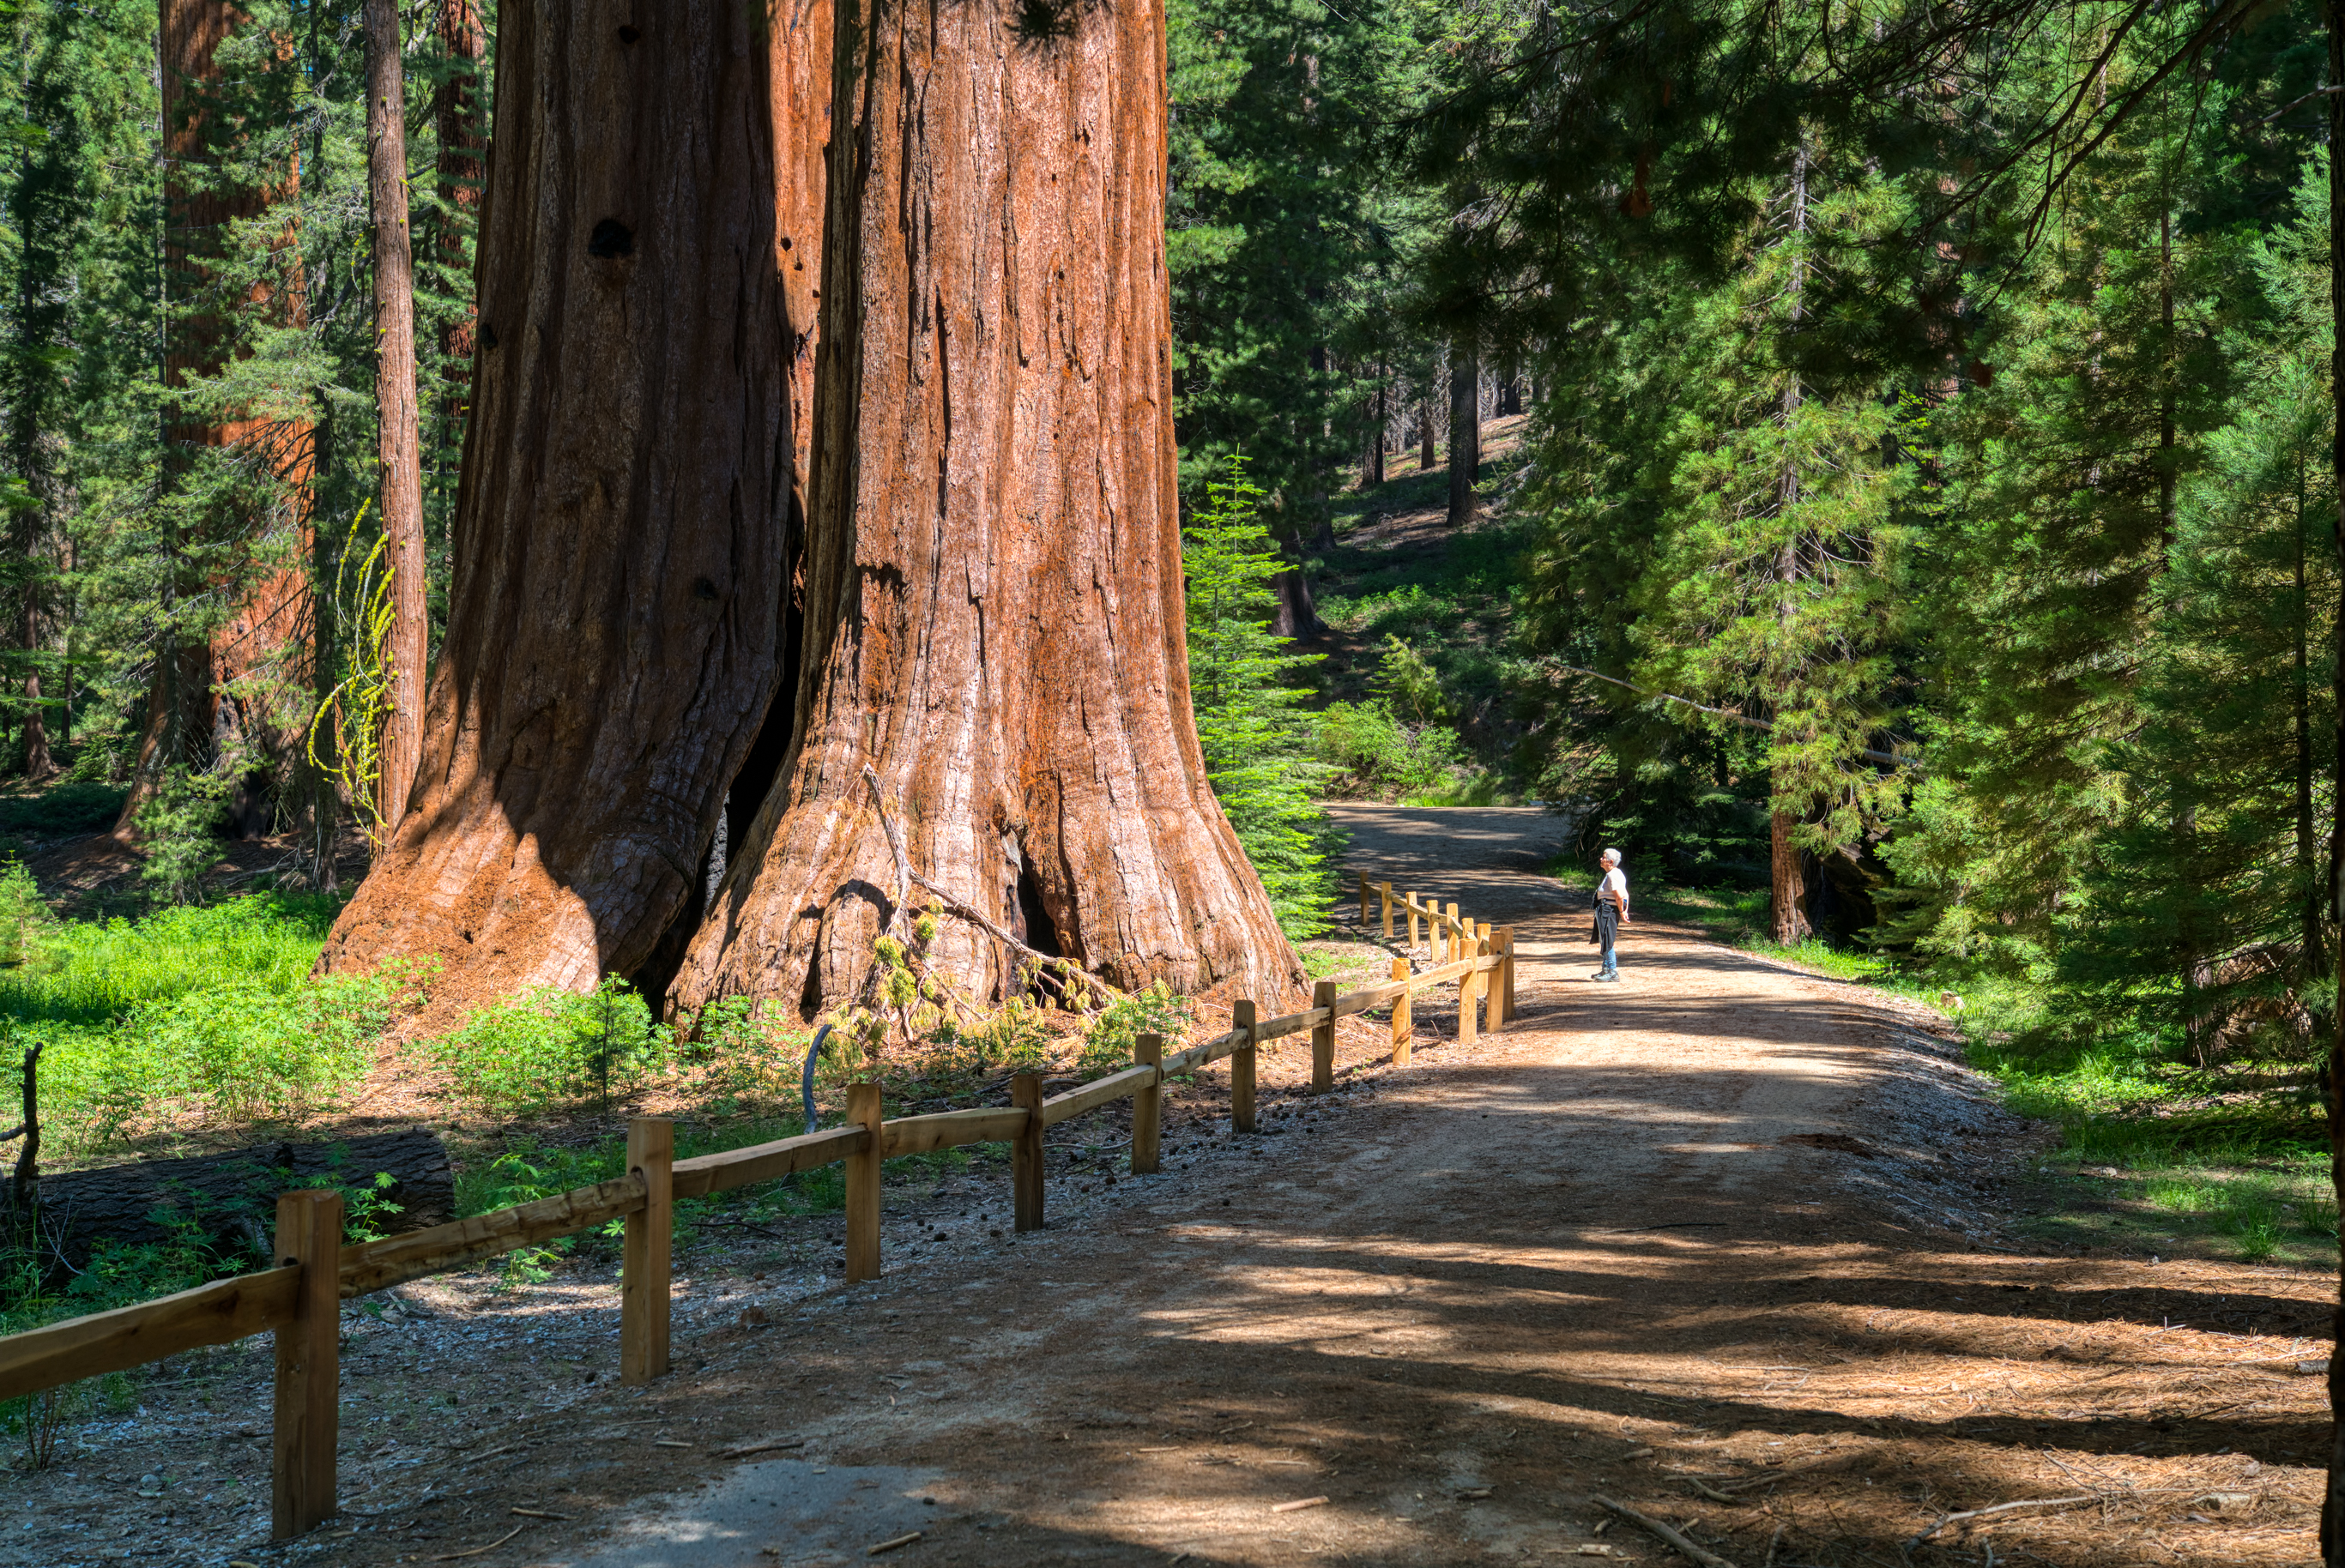 Mariposa Grove, Giant Sequoias, Hiking, Yosemite National Park